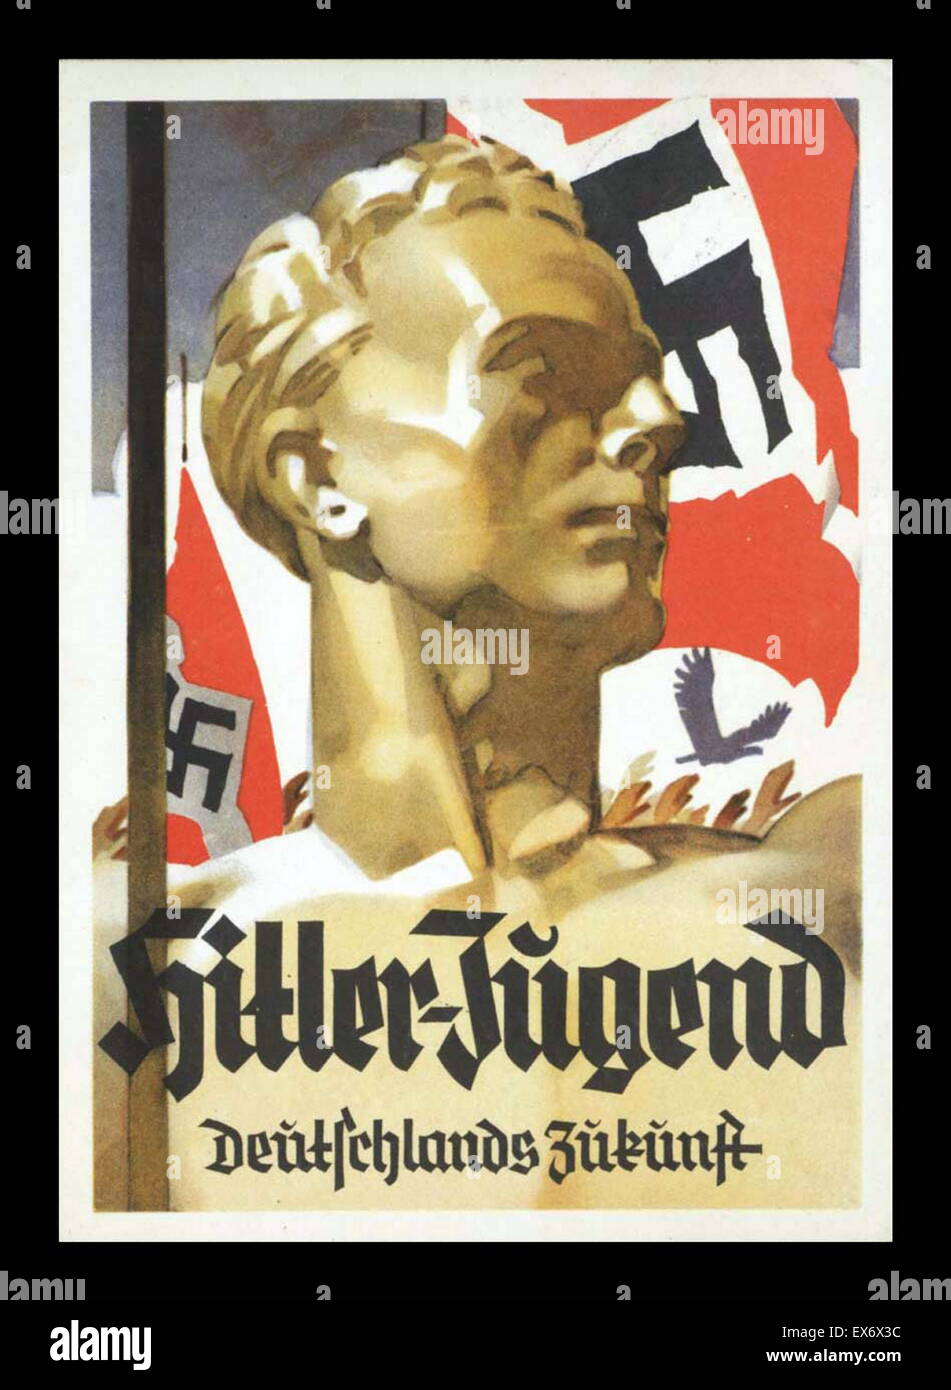 propaganda in nazi germany essay The jewish enemy nazi propaganda during world war ii and the holocaust jeffrey herf the belknap press of harvard university press.